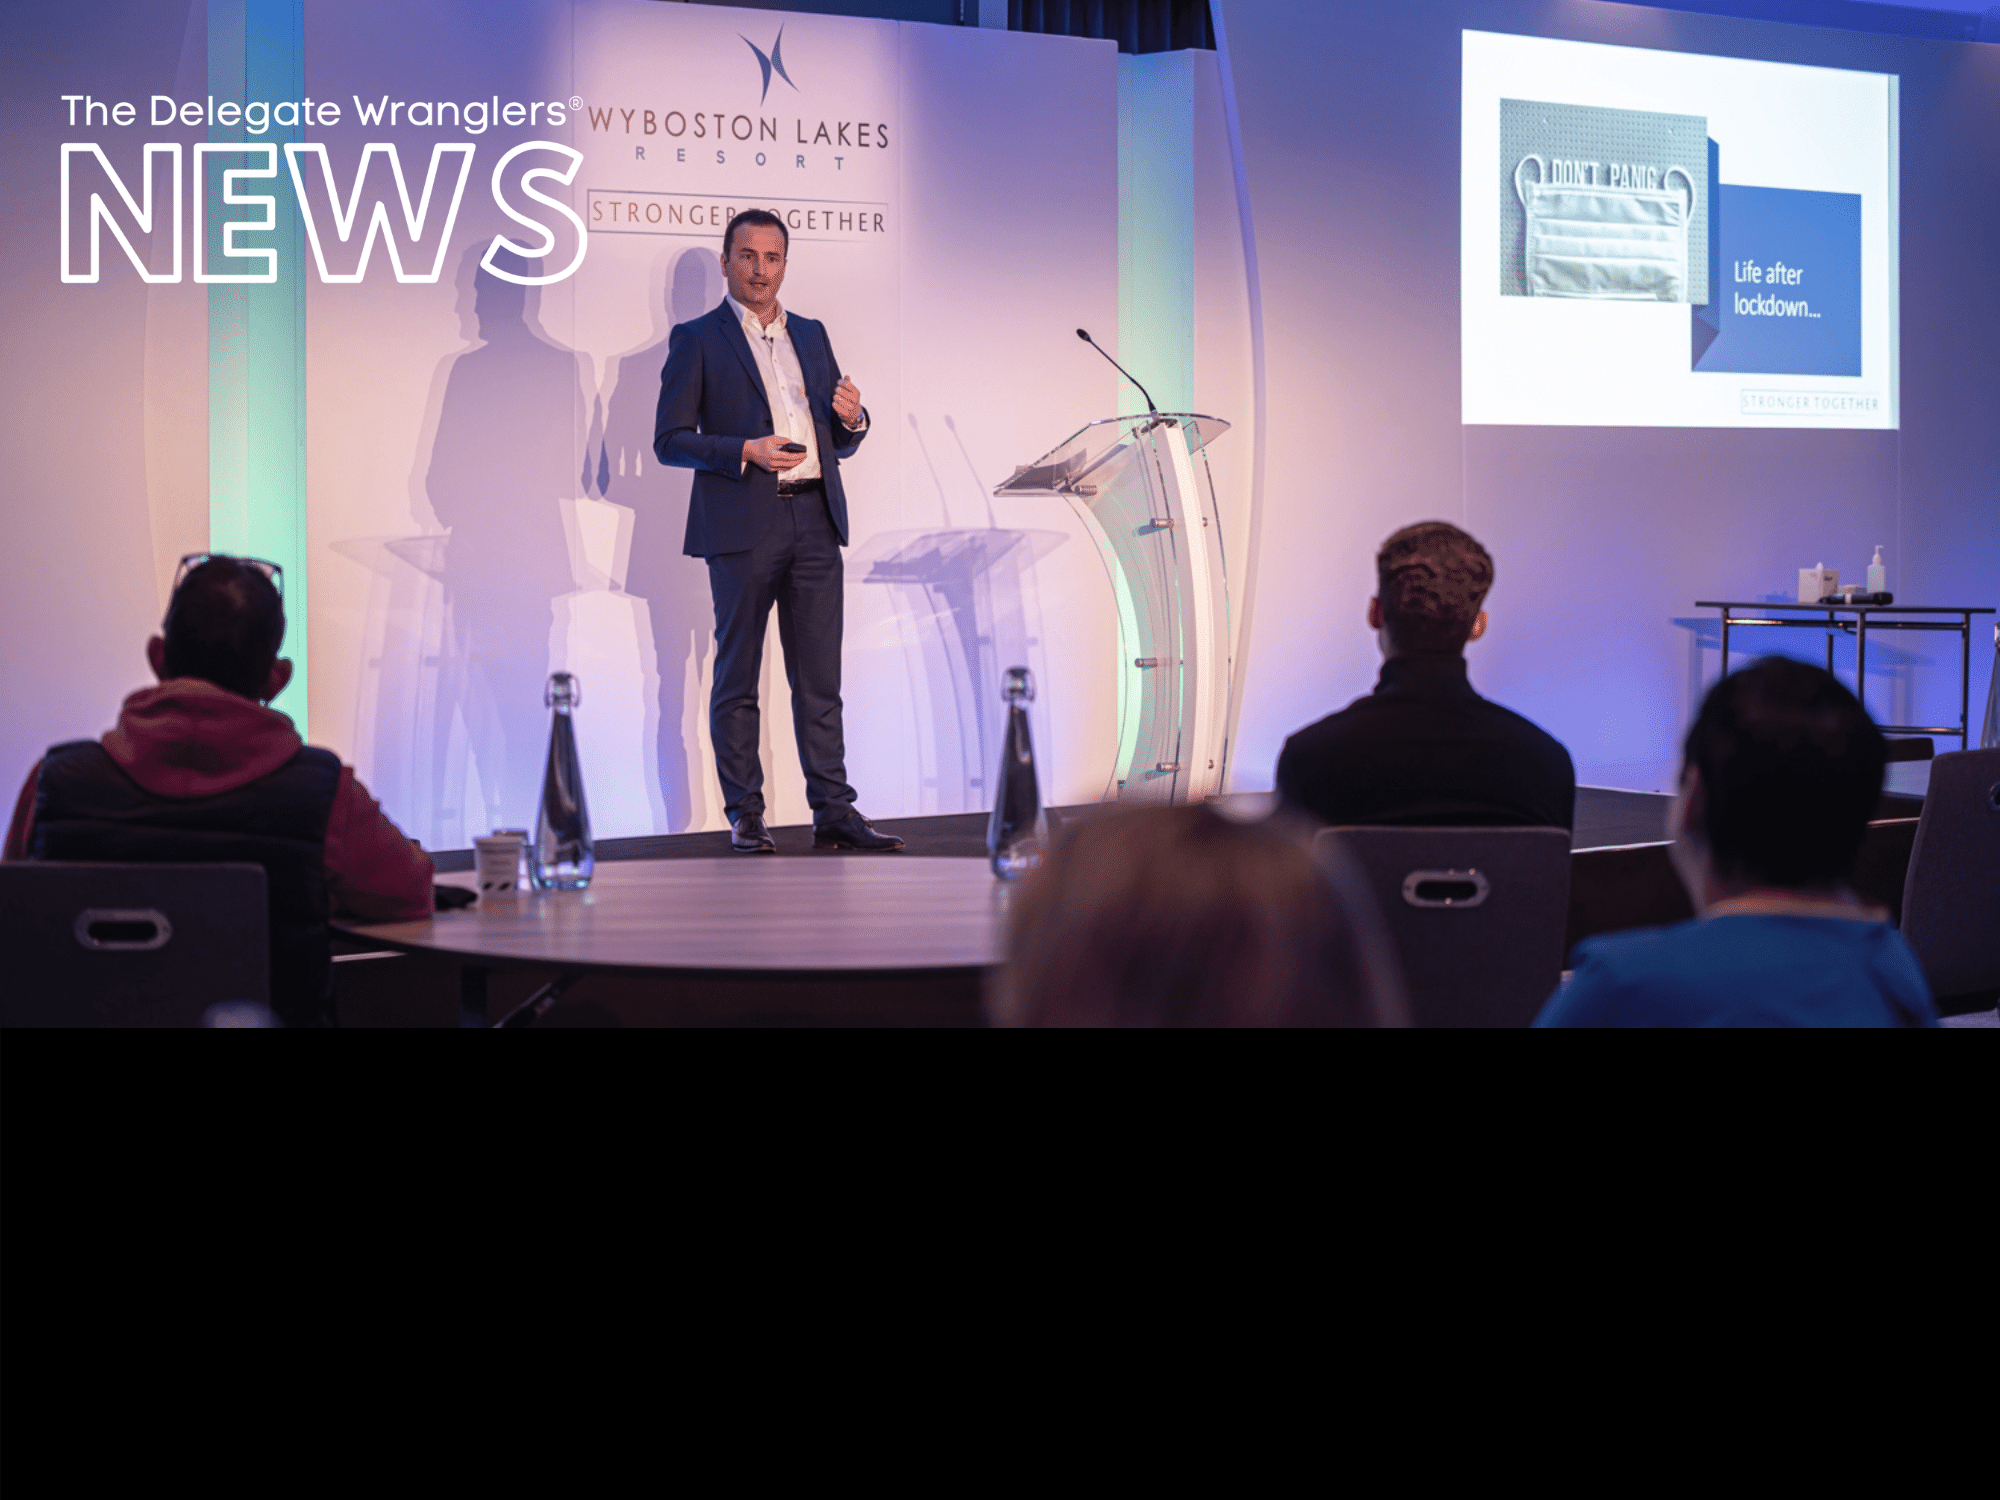 Wyboston Lakes Resort launches comprehensive Hybrid Events solution